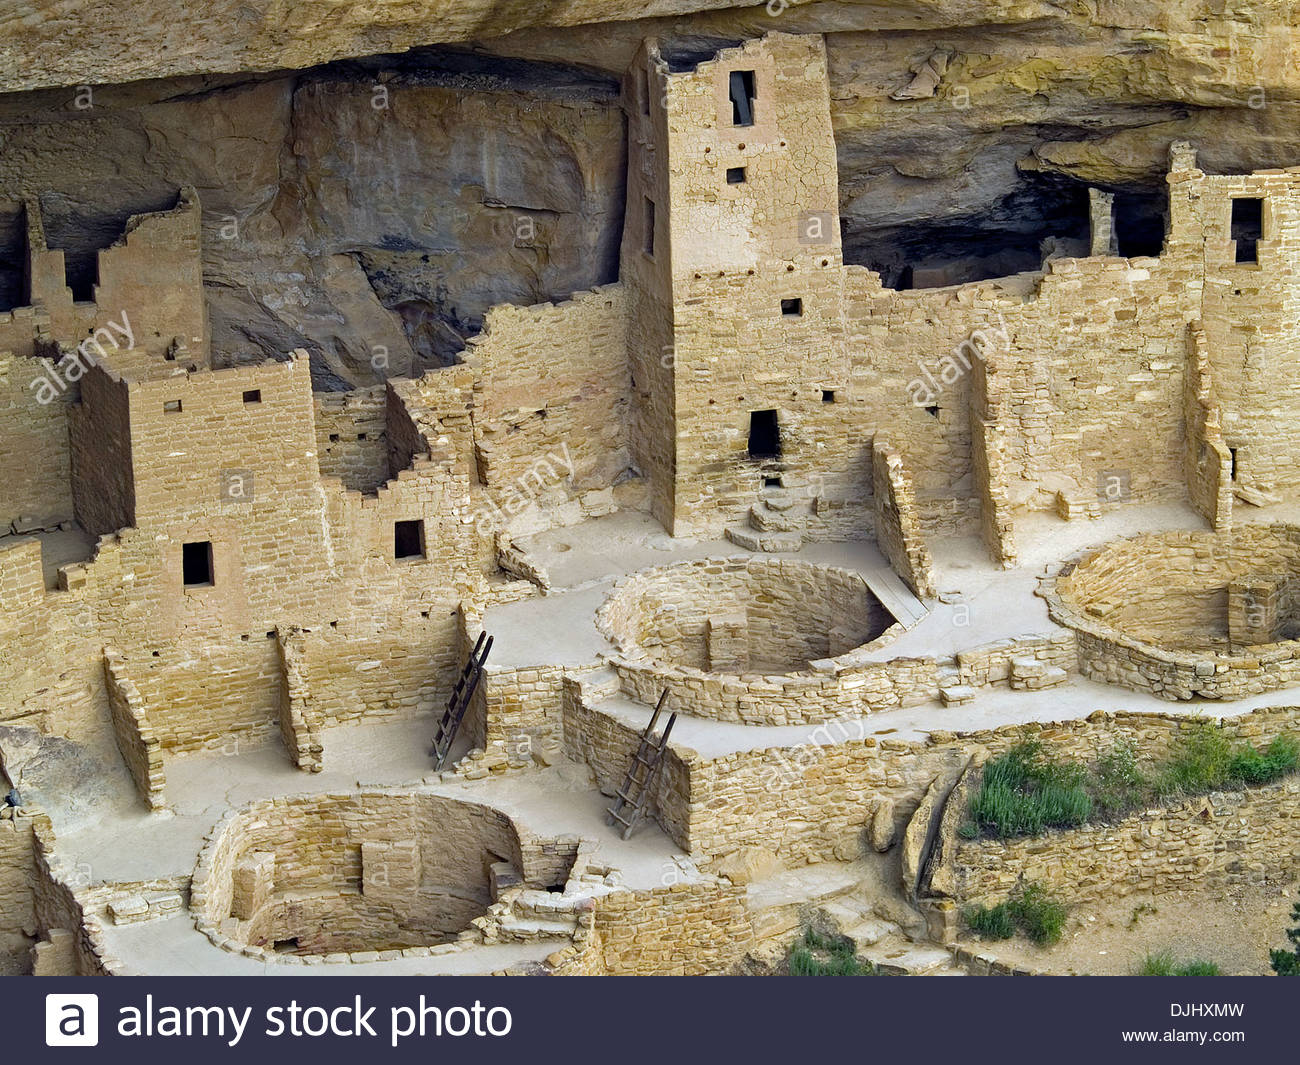 The ruins of the Cliff Palace,Mesa Verde,Colorado - Stock Image